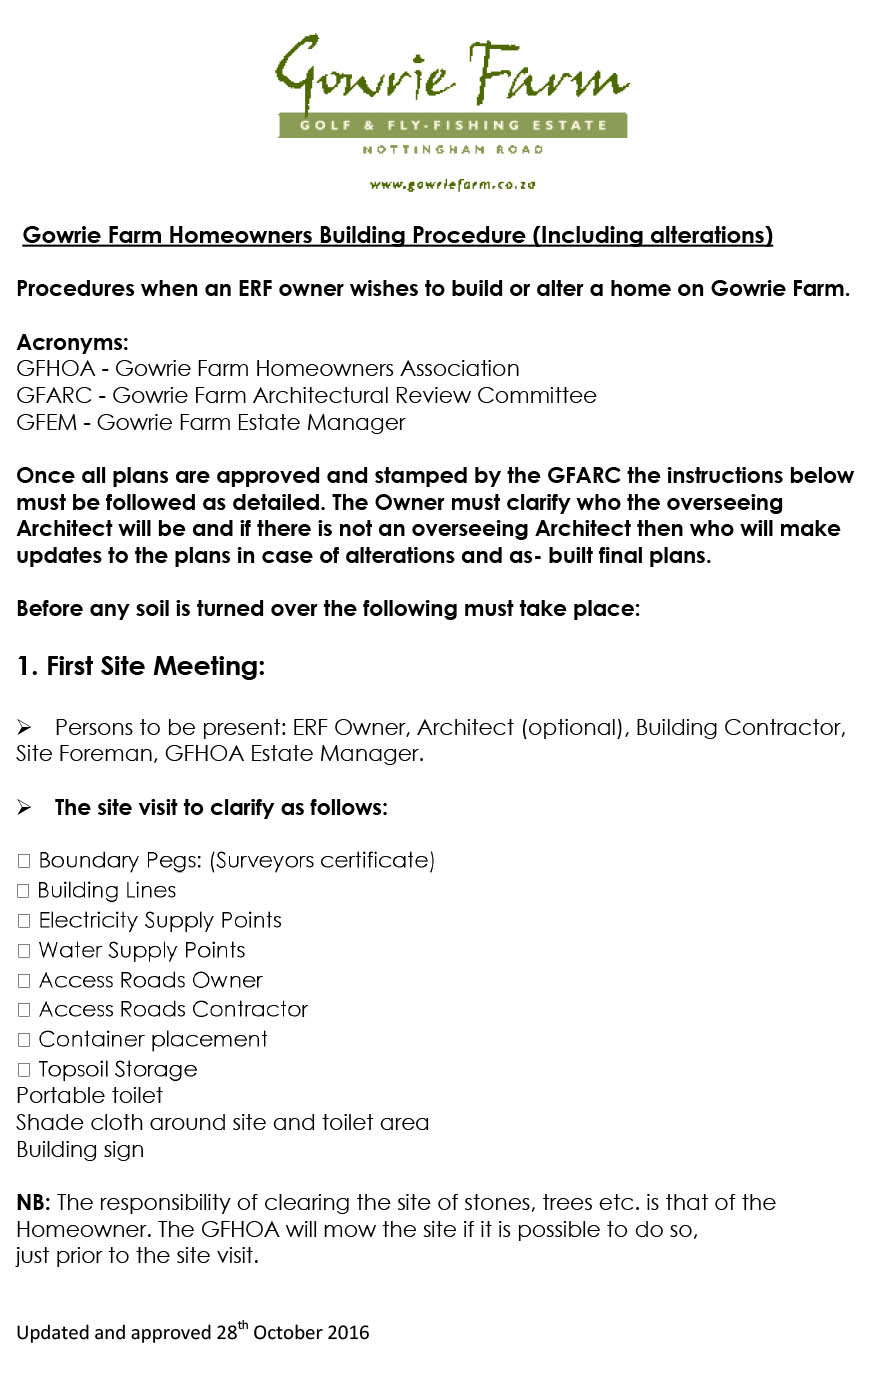 Procedures-to-build-on-Gowrie-Farm-updated-28th-September-2016